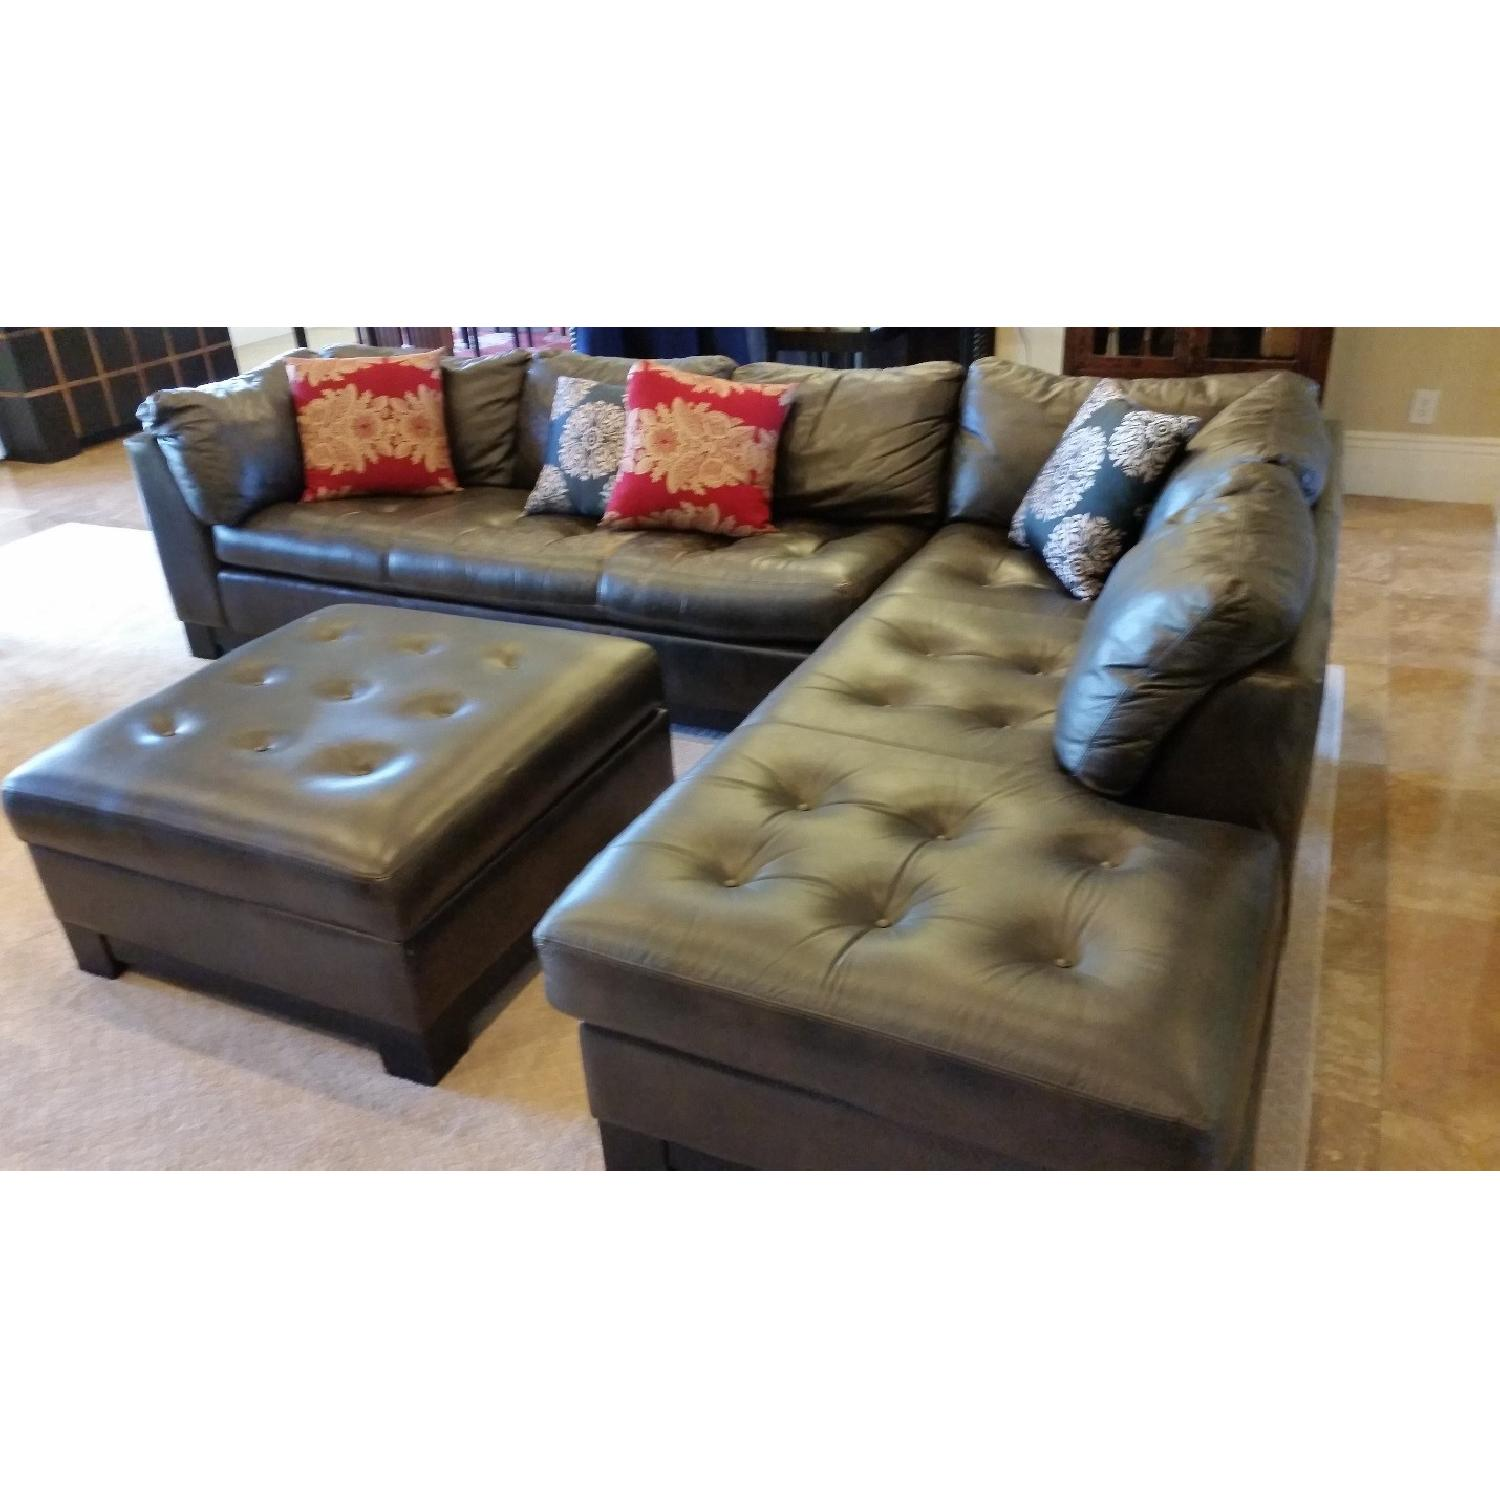 Brown Tufted Leather 2-Piece Sectional Sofa - image-2